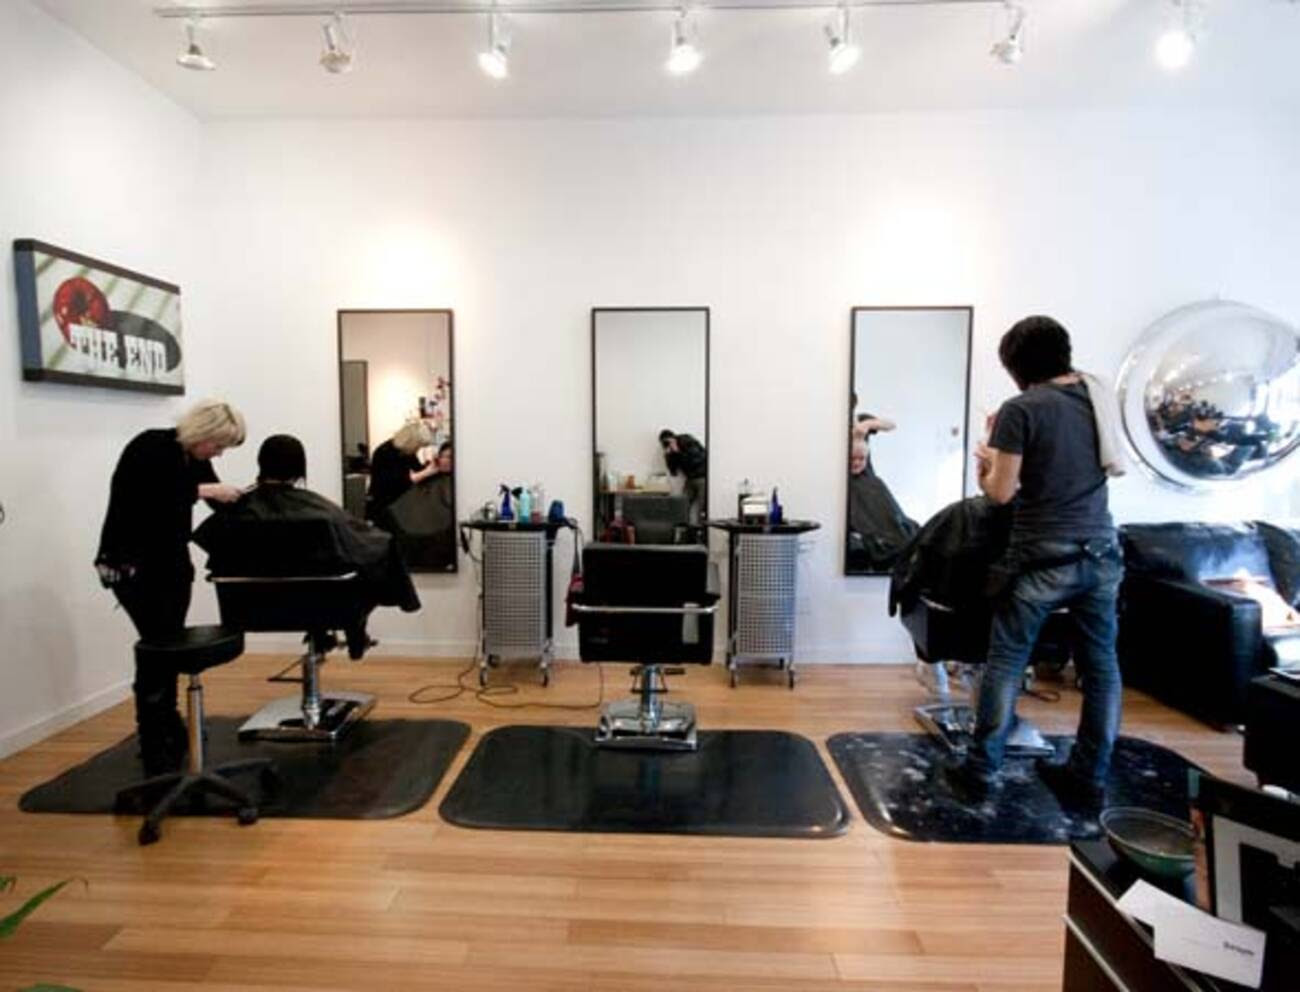 Upscale hair salon opens near College and Dufferin